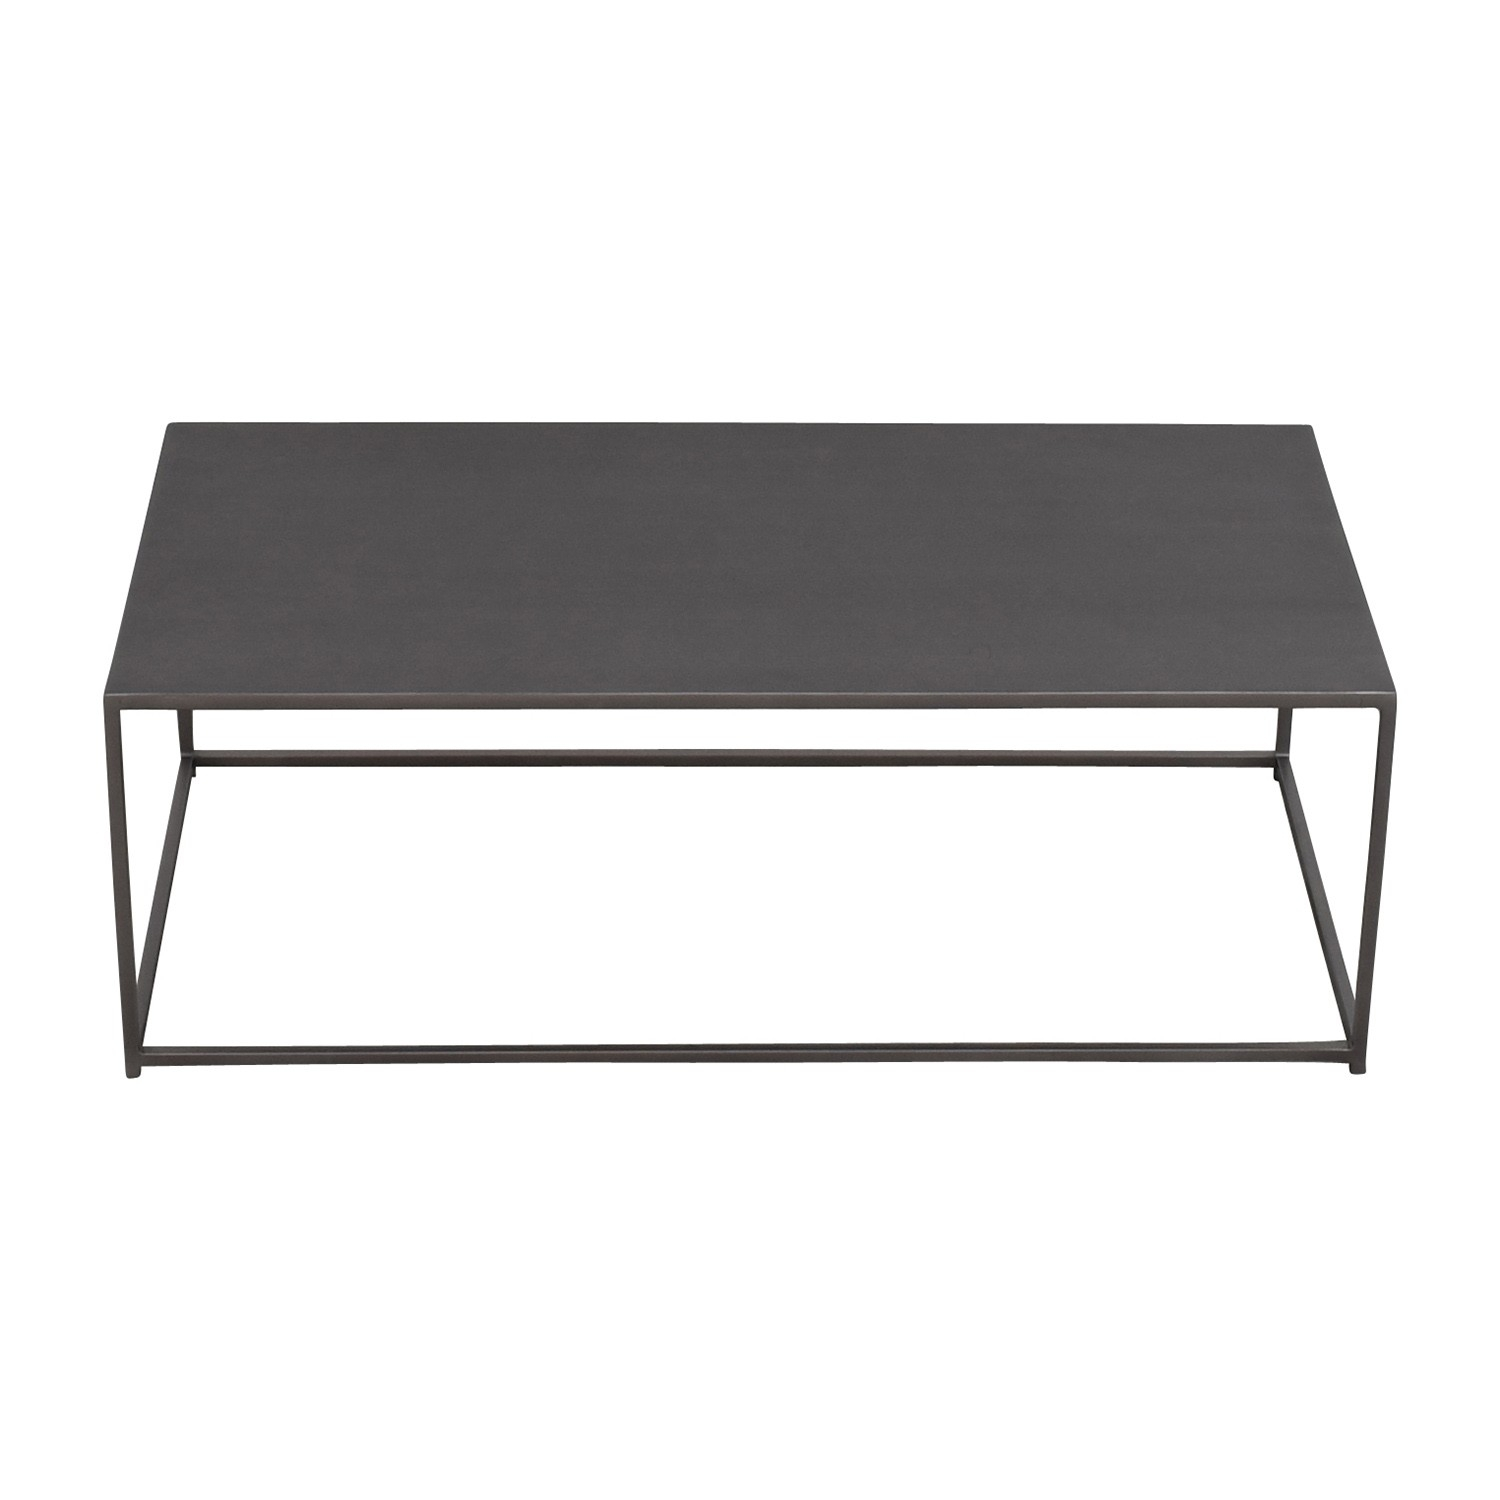 Cb2 Coffee Tables - Tadalafilcanada with regard to Mill Coffee Tables (Image 6 of 30)